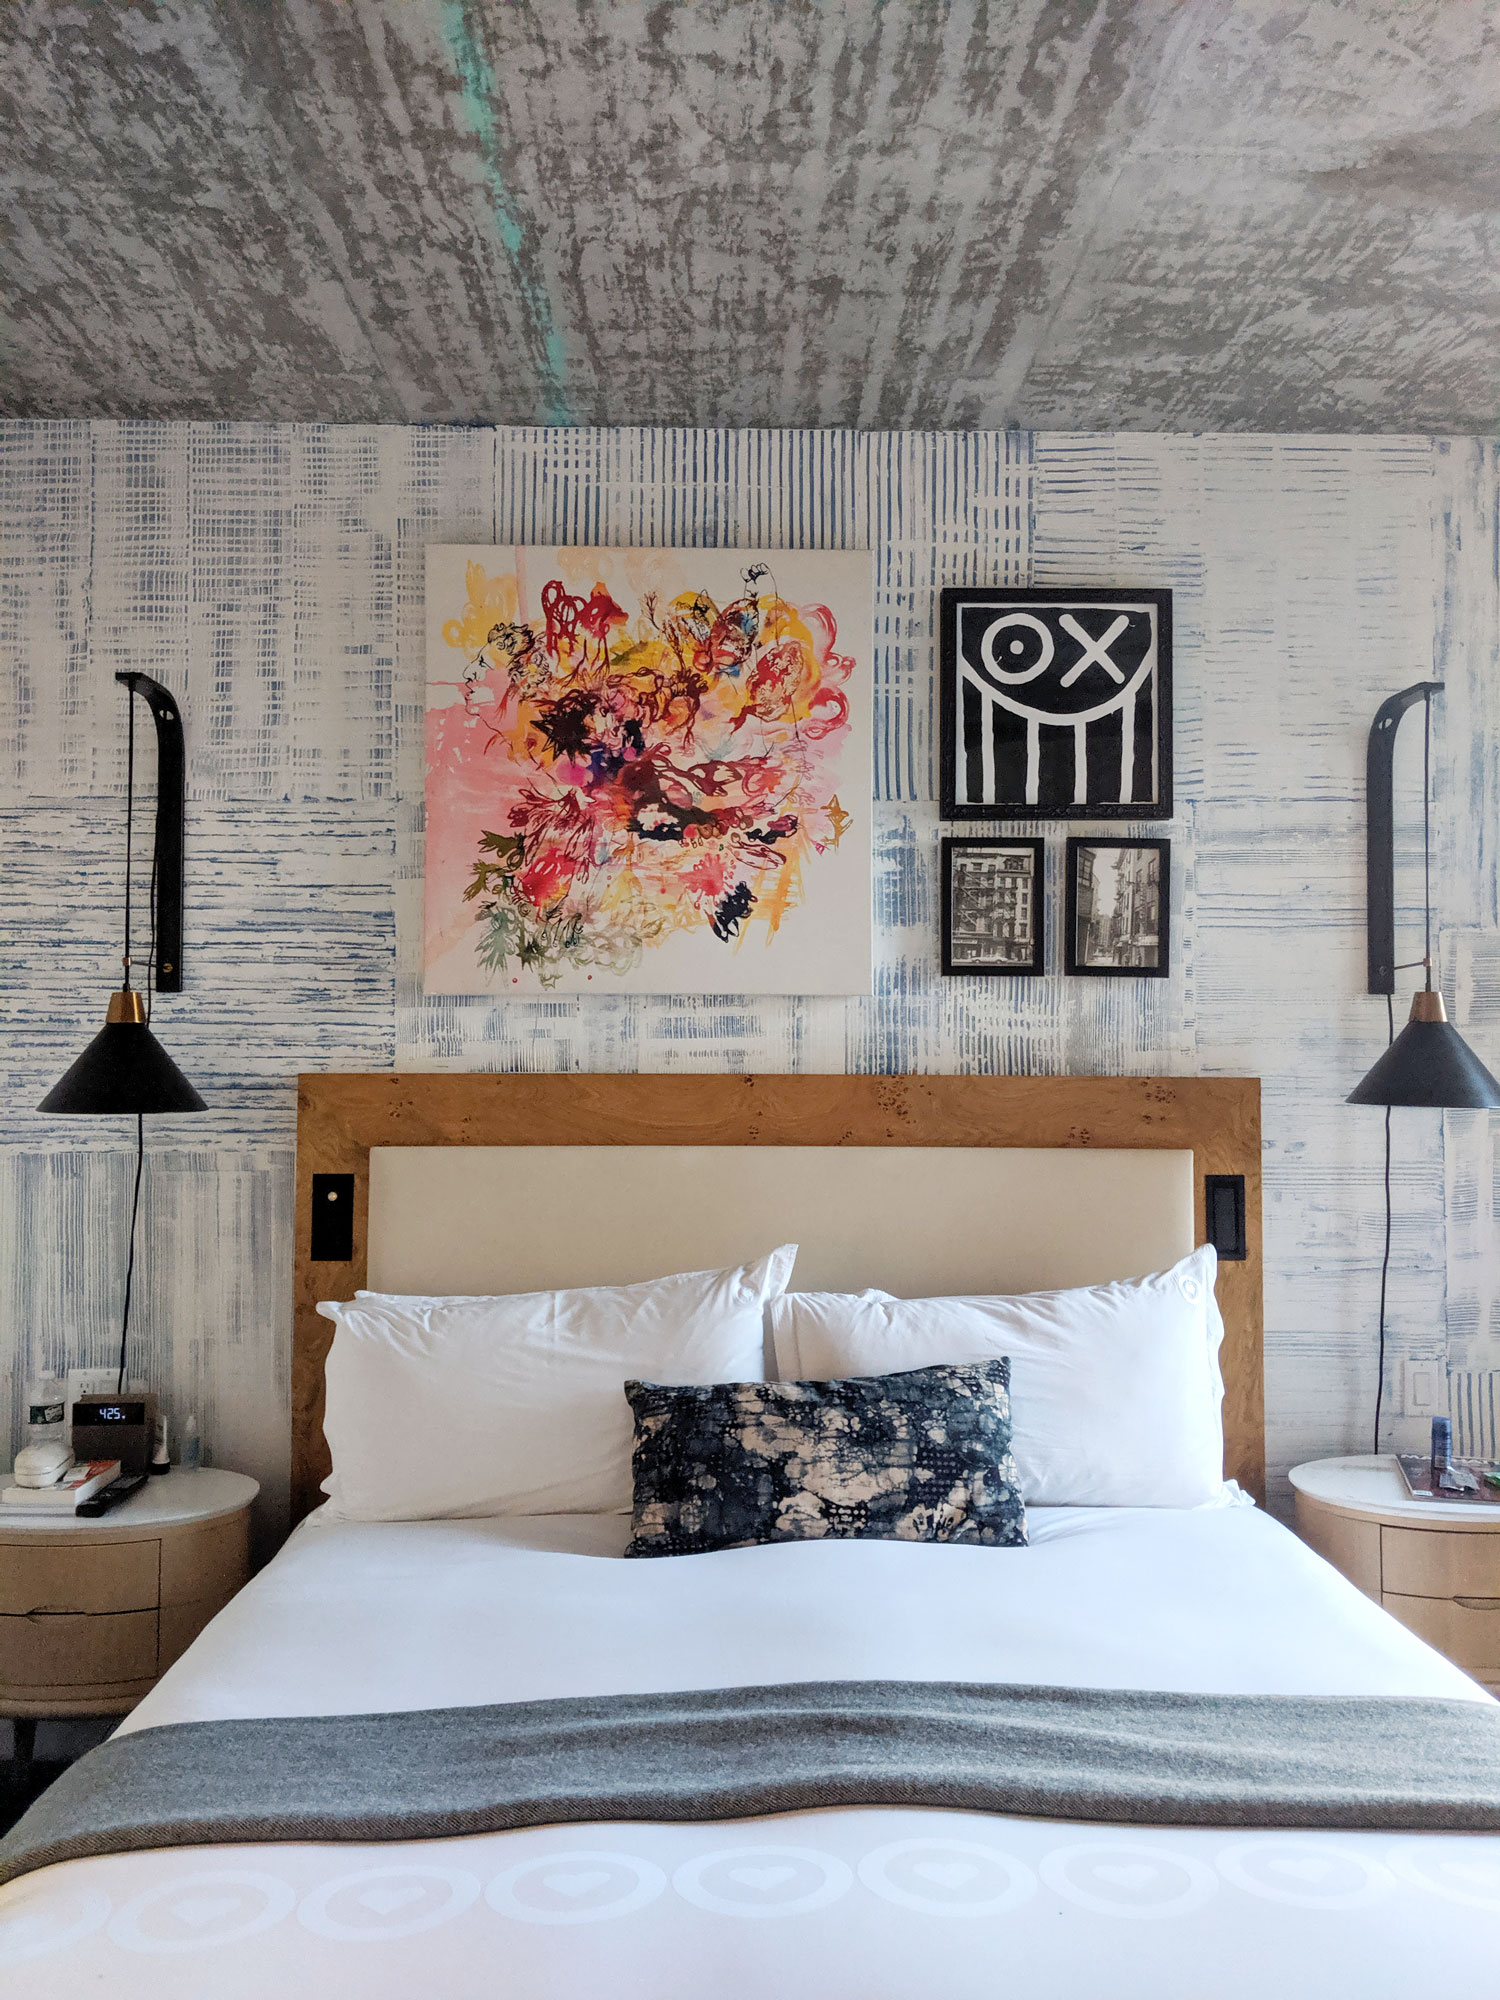 Hotel-50-Bowery-New-York-Manhattan-Review-Room-Travel-Blogger-8